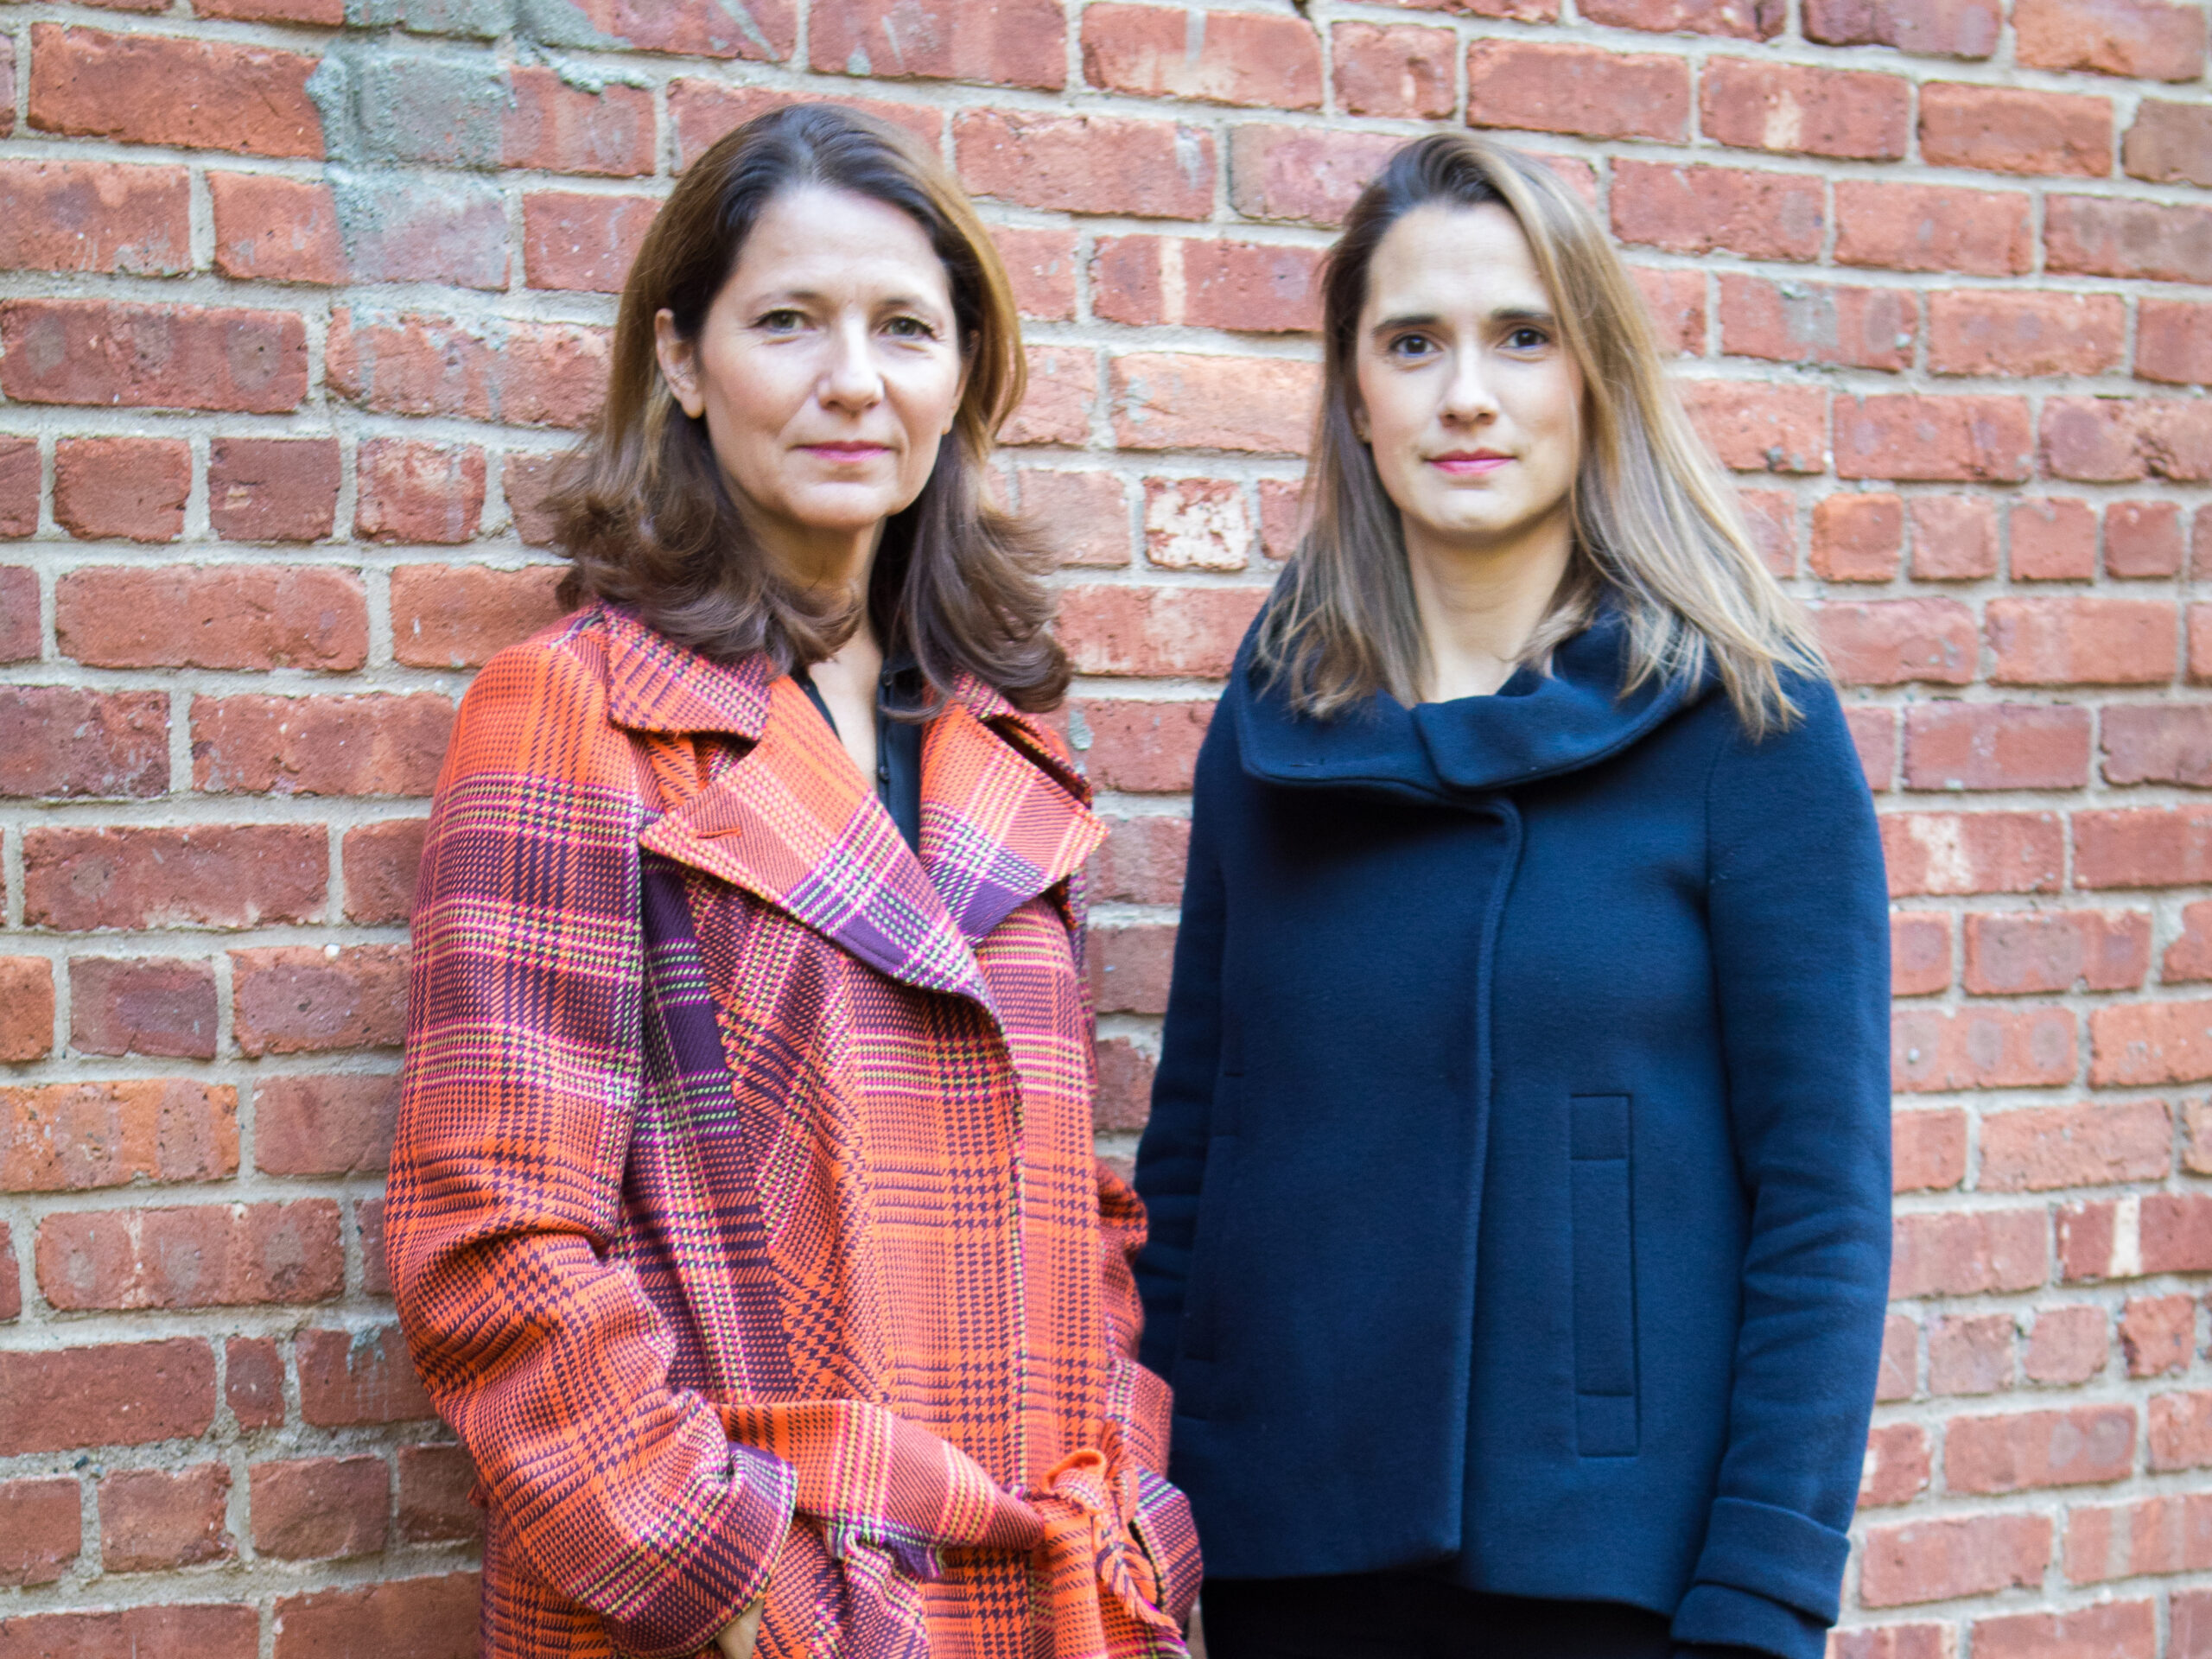 Odile Hainaut and Claire Pijoulat, co-fondatrici di WantedDesign